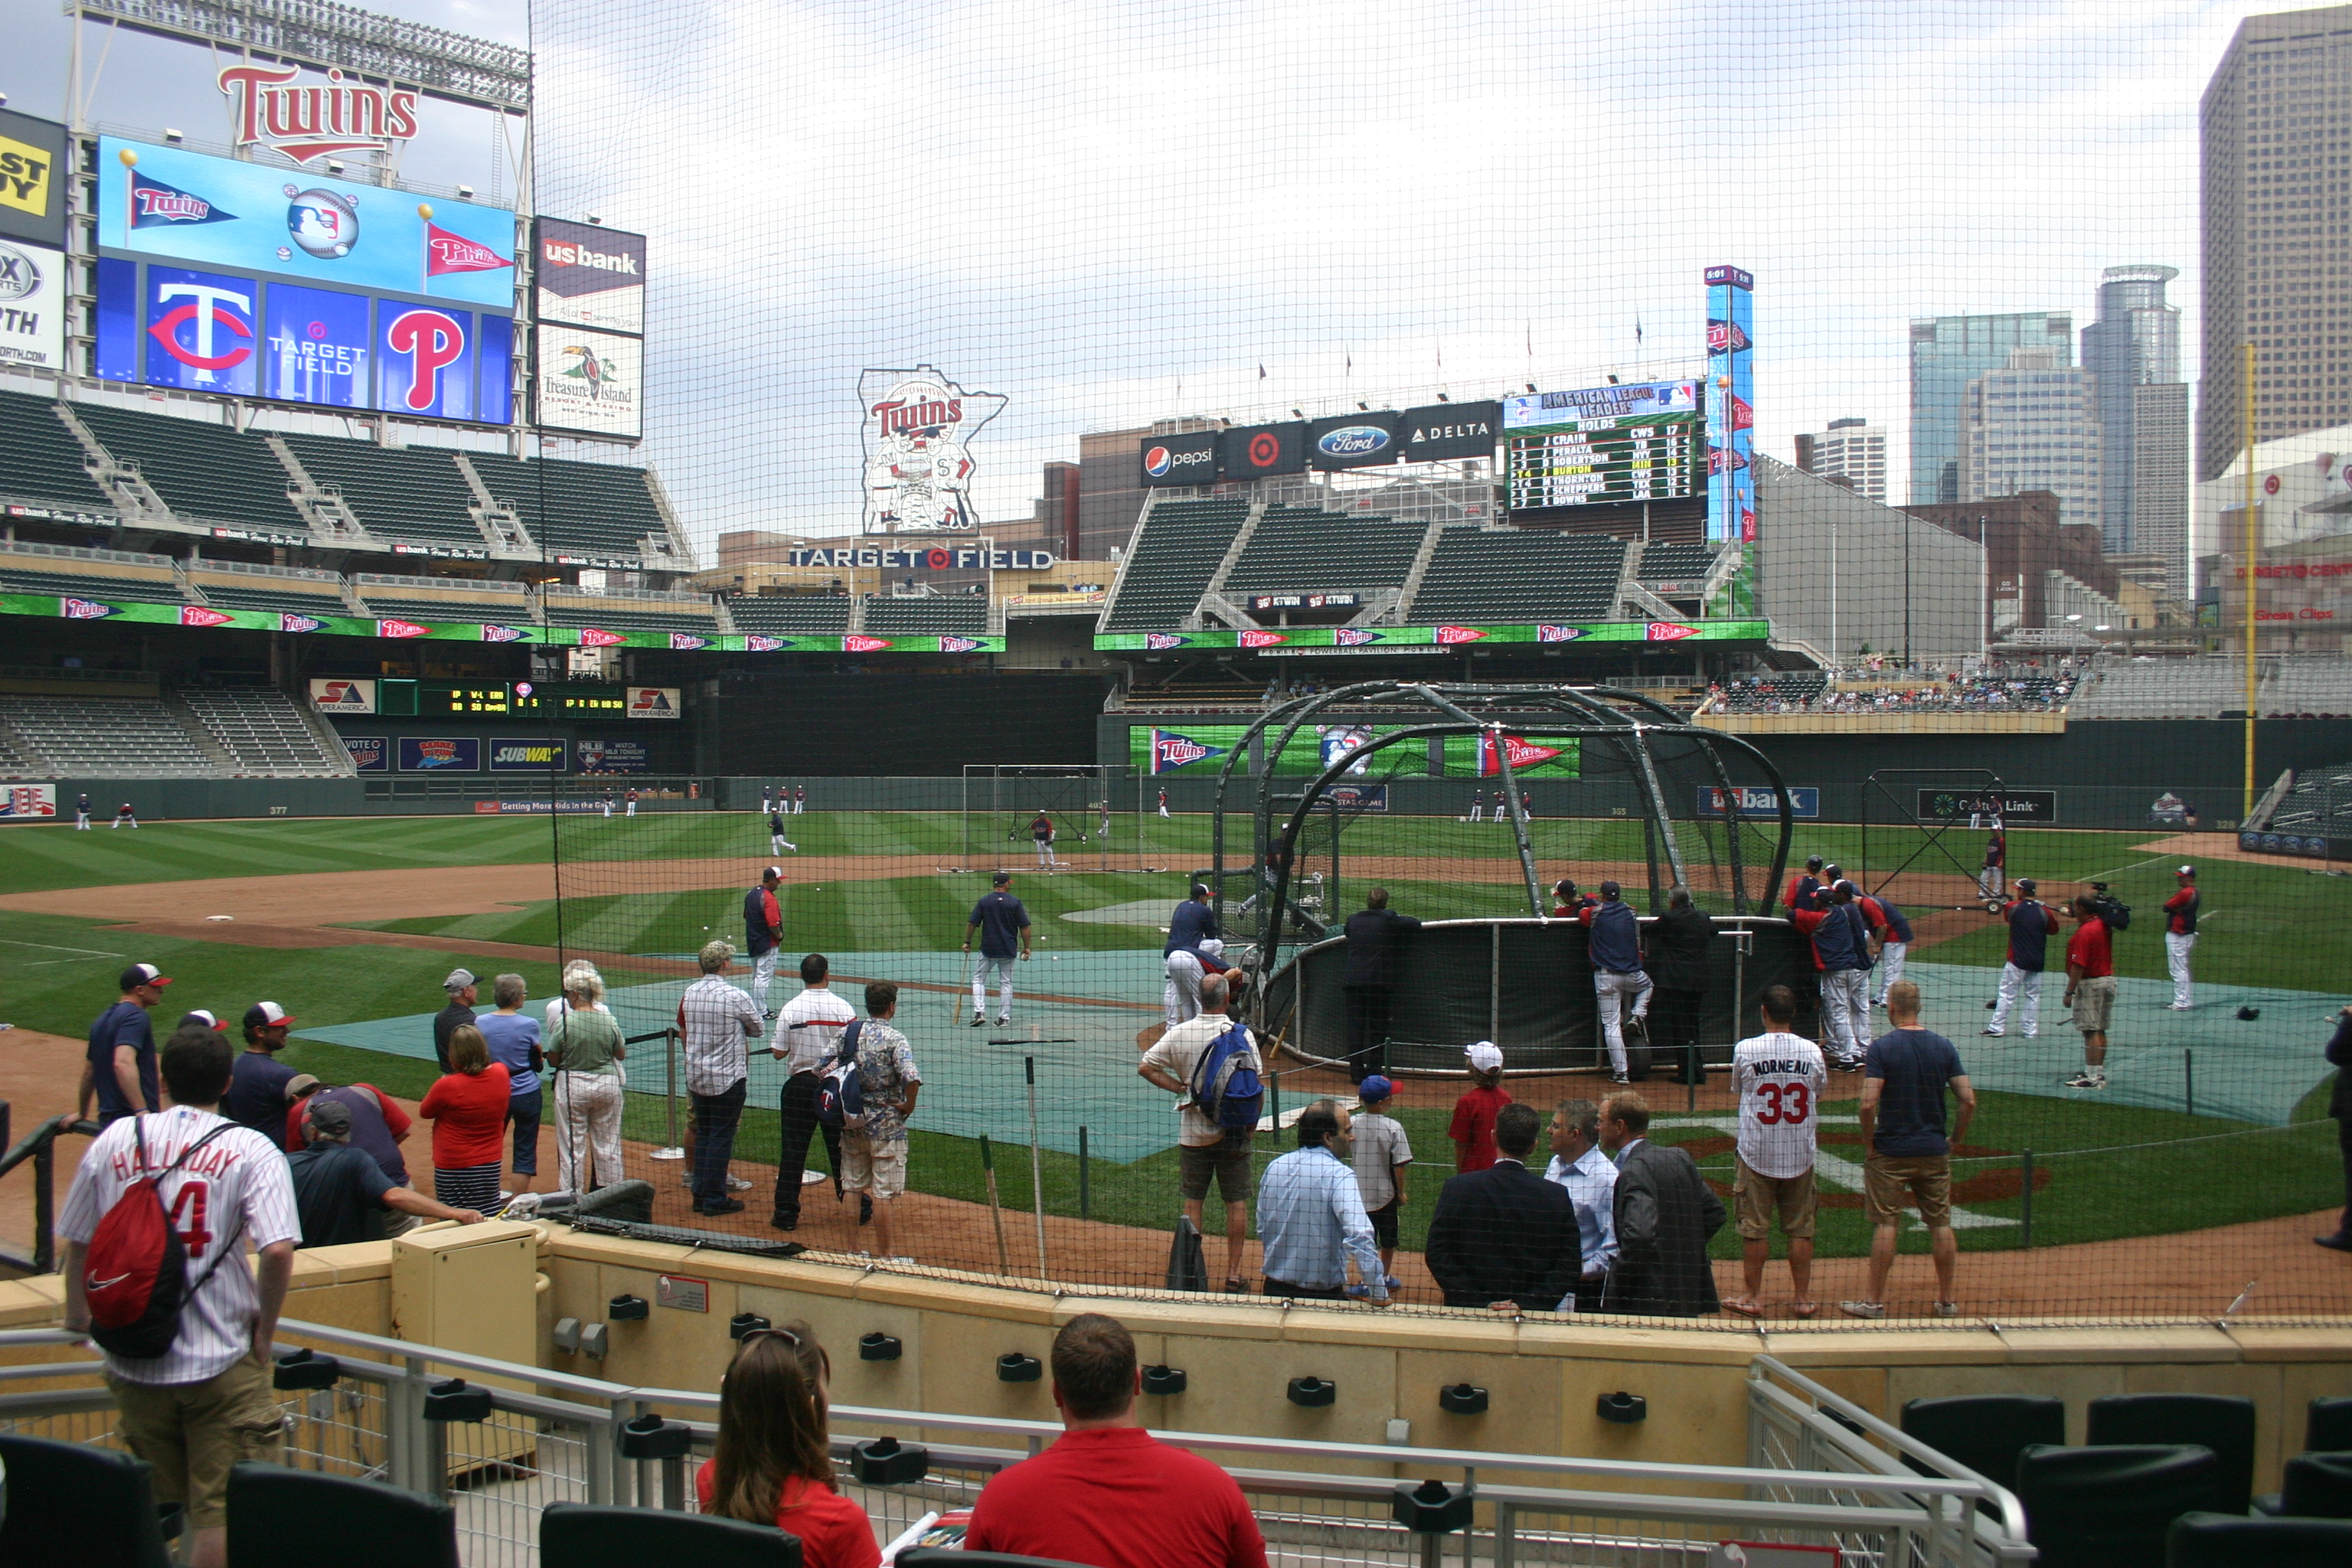 Target Field,Twins,Midwest baseball tour,sports travel,baseball vacation packages